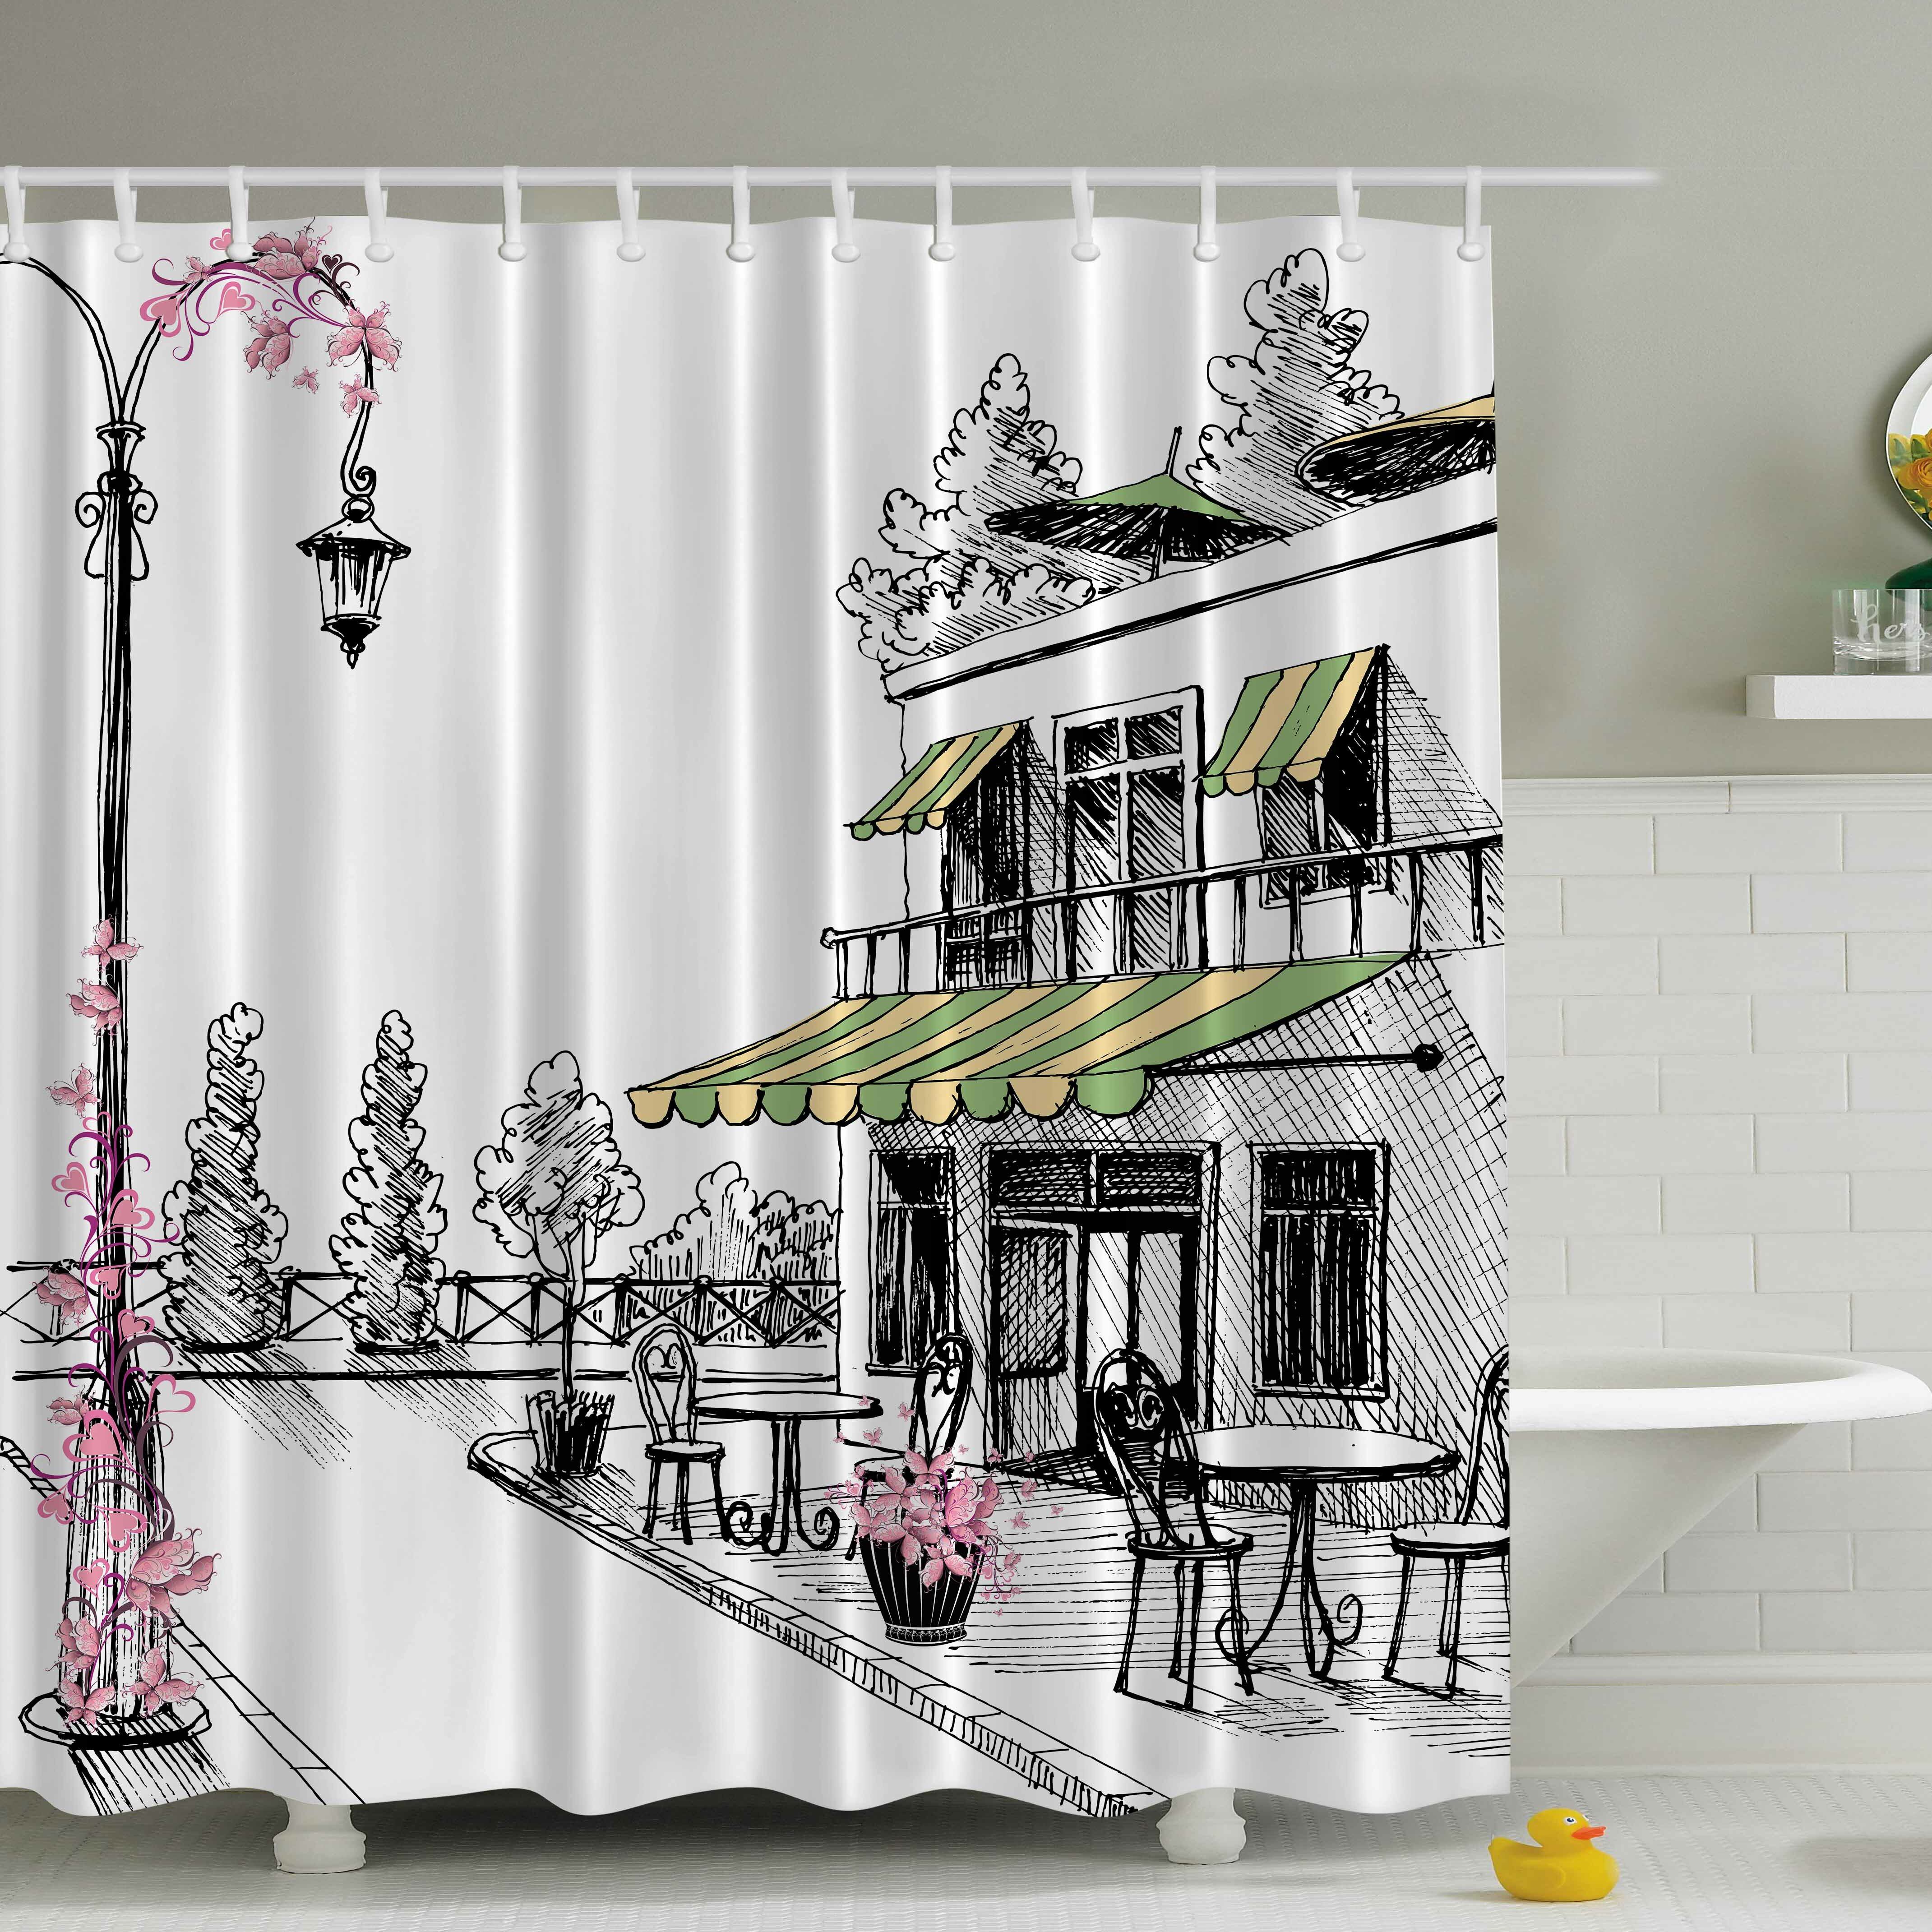 Polyester Street Cafe Pattern Shower Curtain Ring Hook Set Washable Fabric